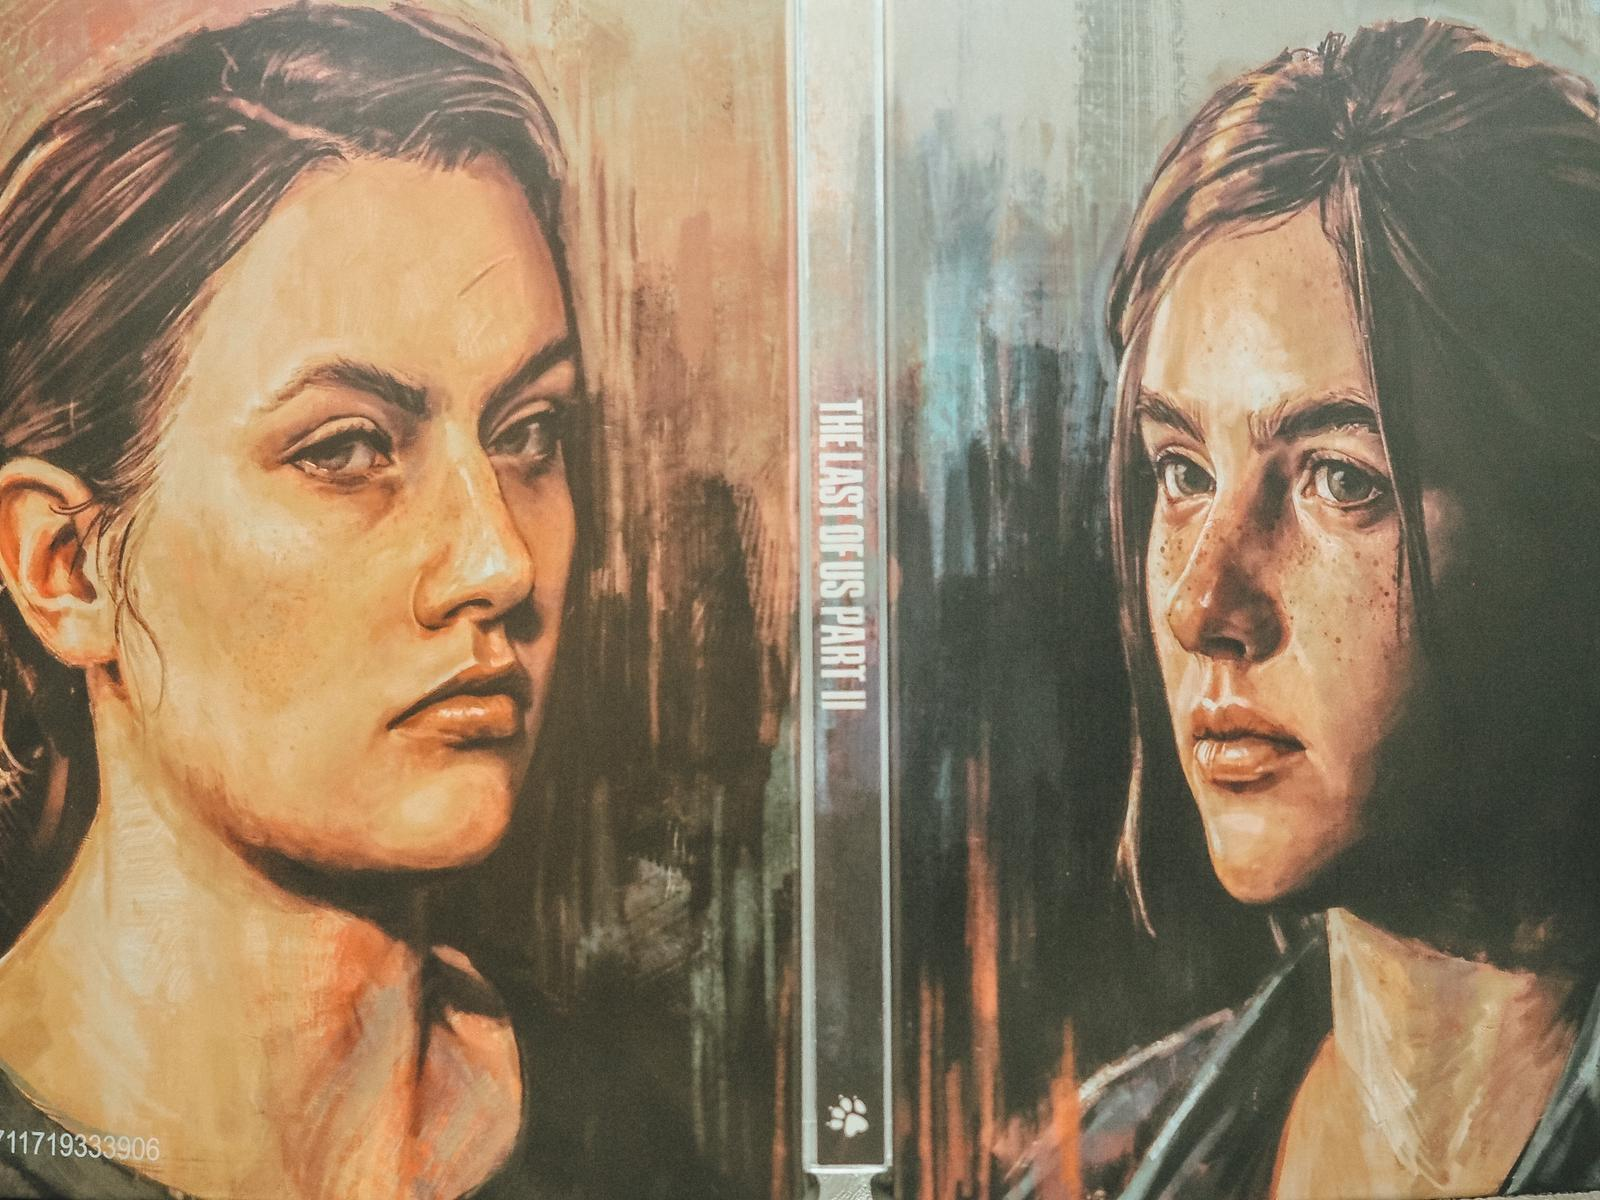 The Last of Us 2 Collectors Edition - Steelbook